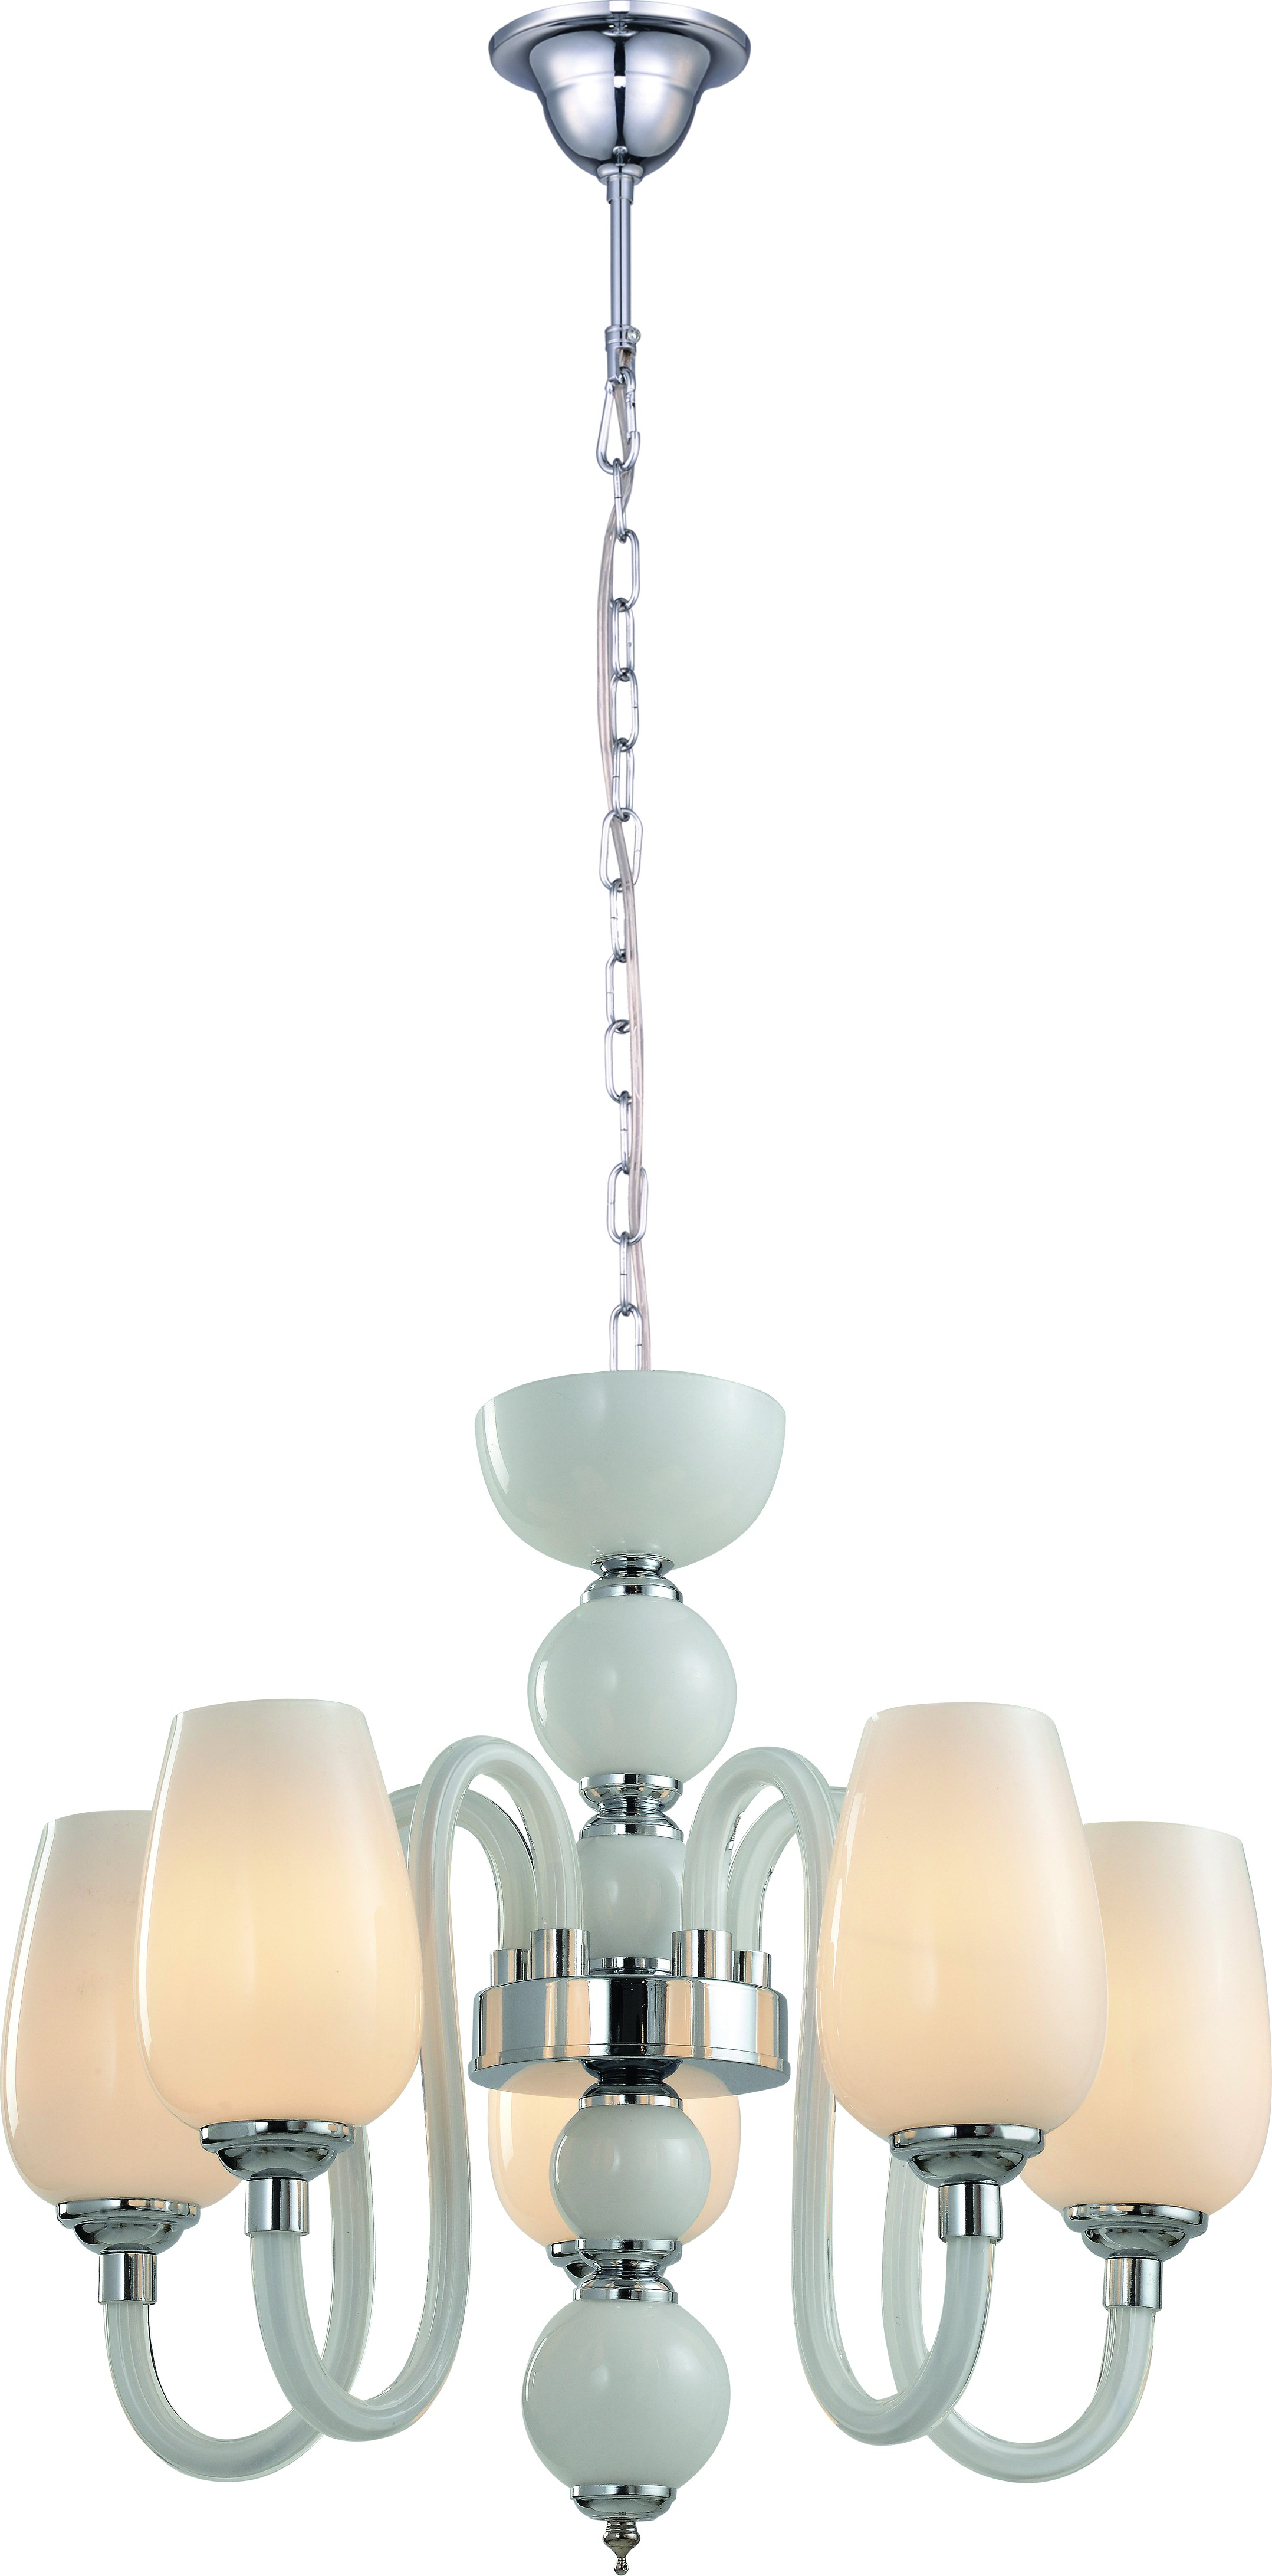 Люстра Arte lamp A1404lm-5wh люстра arte lamp lavinia a1404lm 5wh